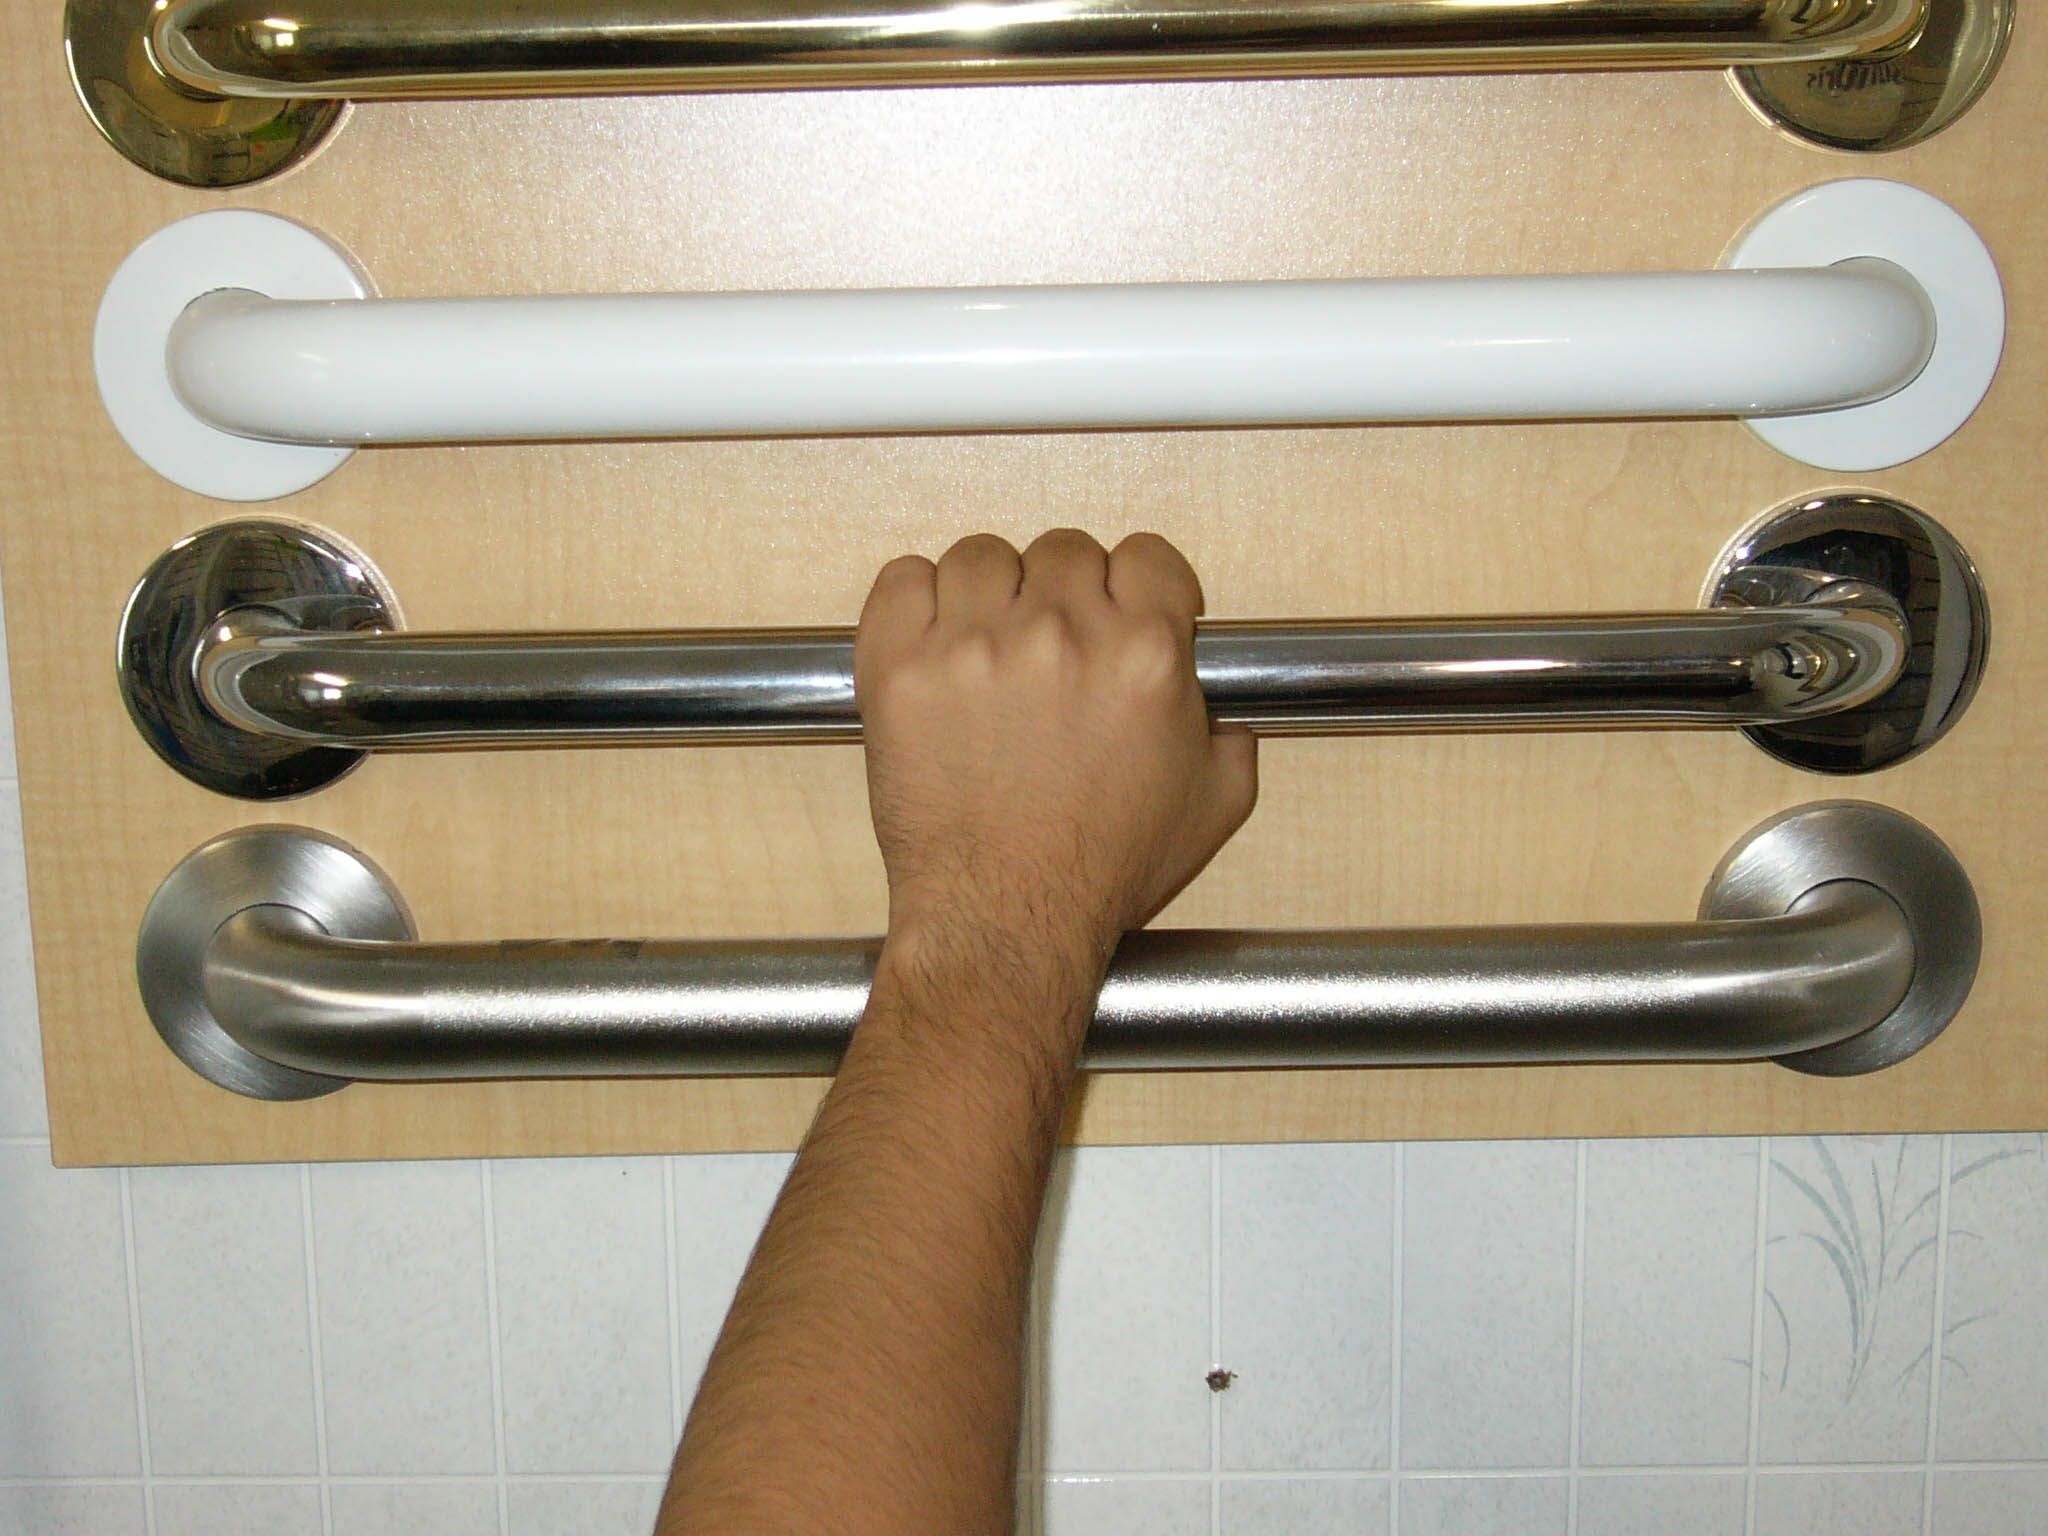 Handicap Bathroom Accessories handicapbathroomsafety equipment >> visit us for more information